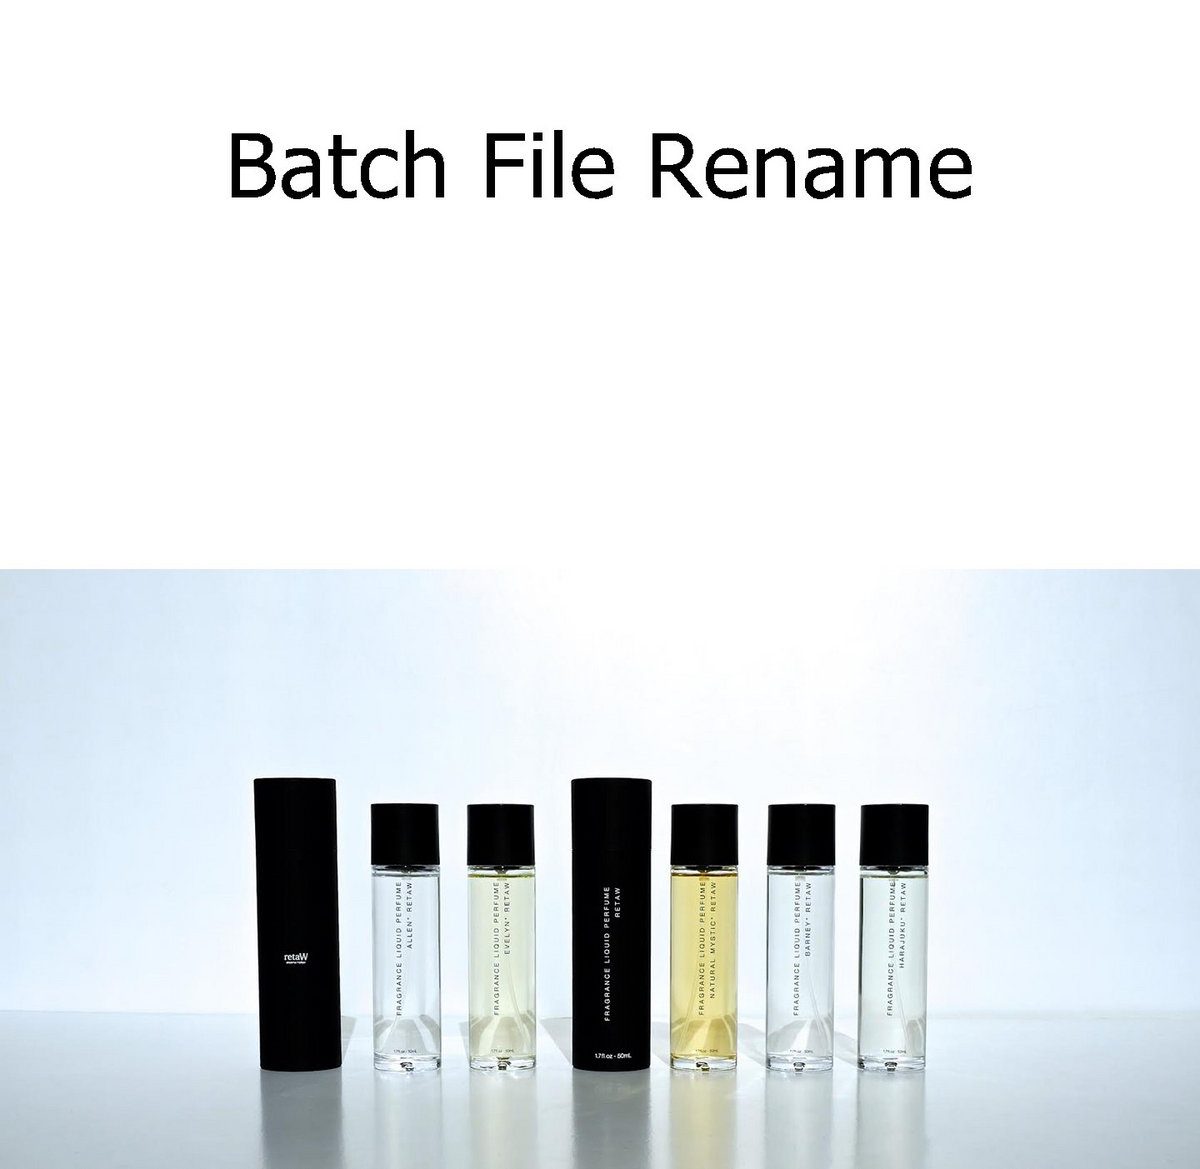 v 2 4 6 Batch File Rename where download stable version